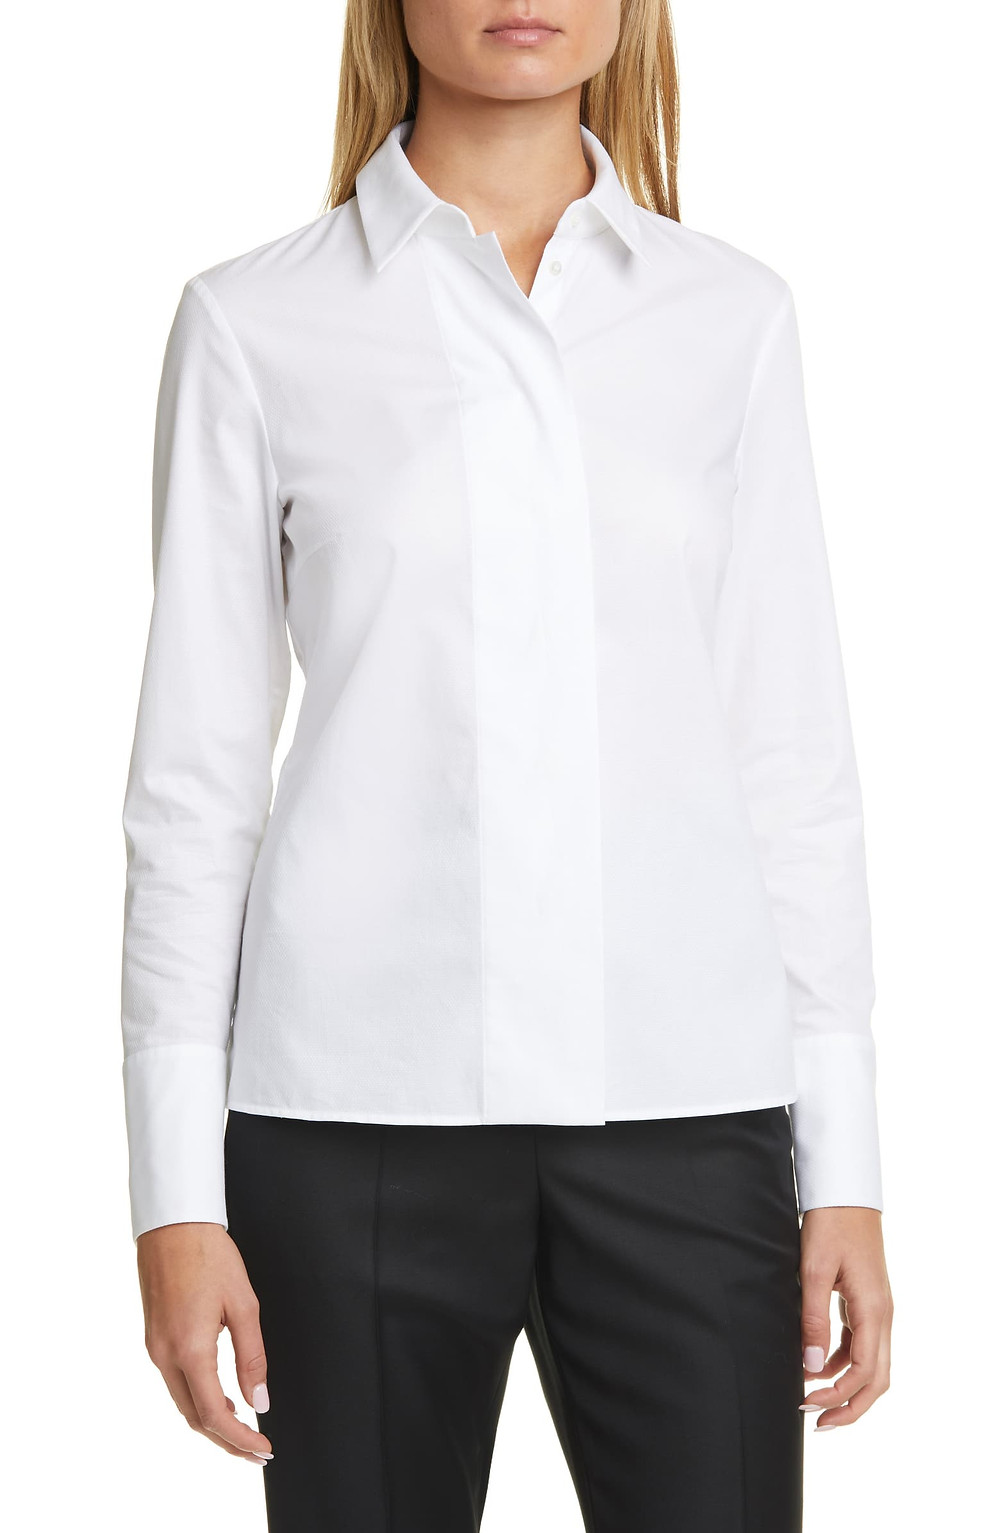 Nordstrom White Blouse